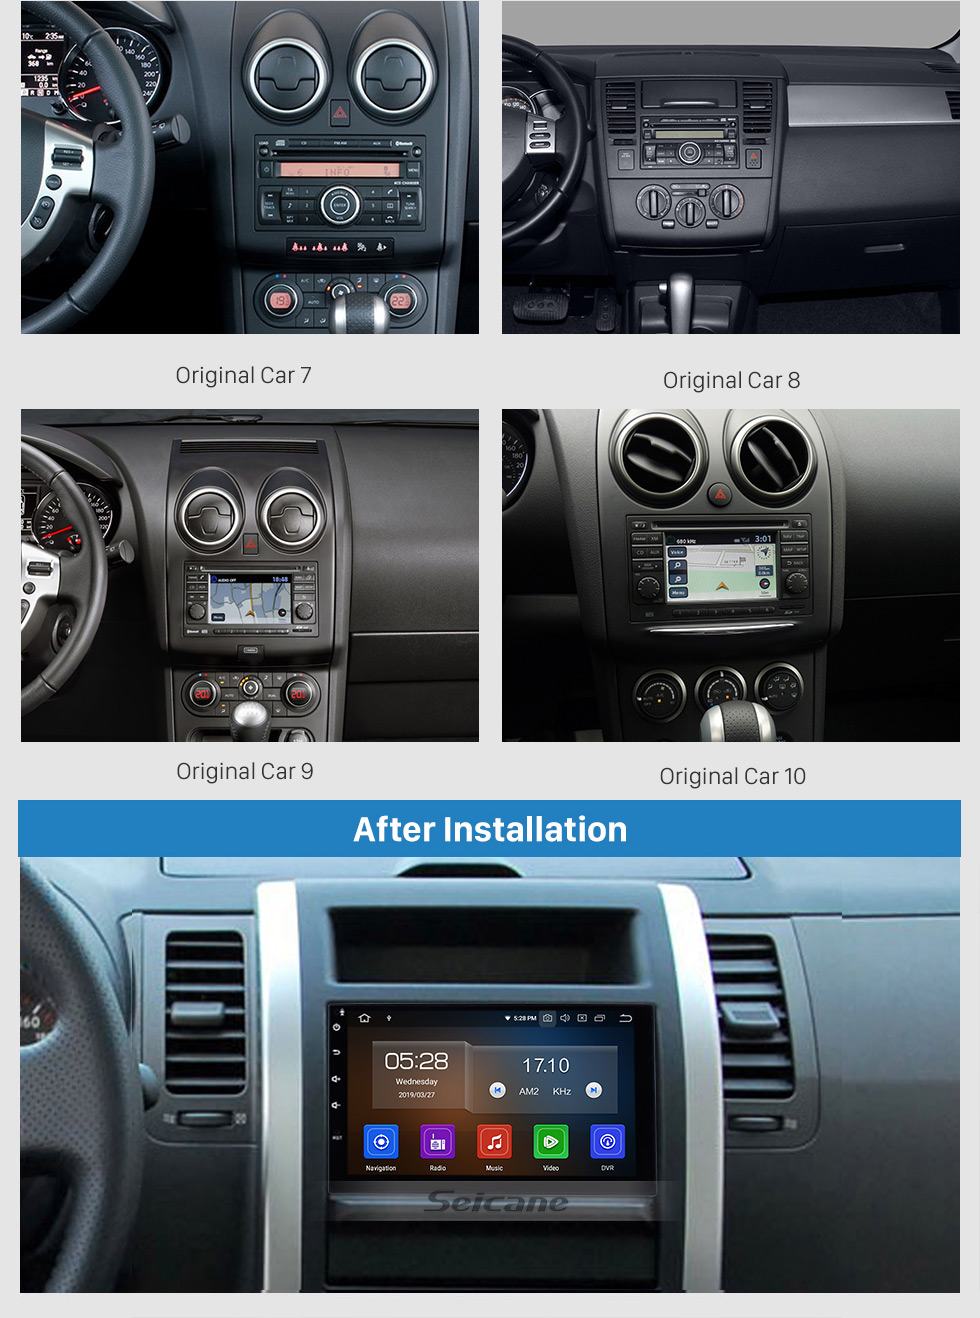 Seicane 7 inch HD Touch screen 2 Din Universal Radio Android 9.0 GPS Navigation system with Bluetooth Phone WIFI Multimedia Player 1080P Video USB Steering Wheel Control